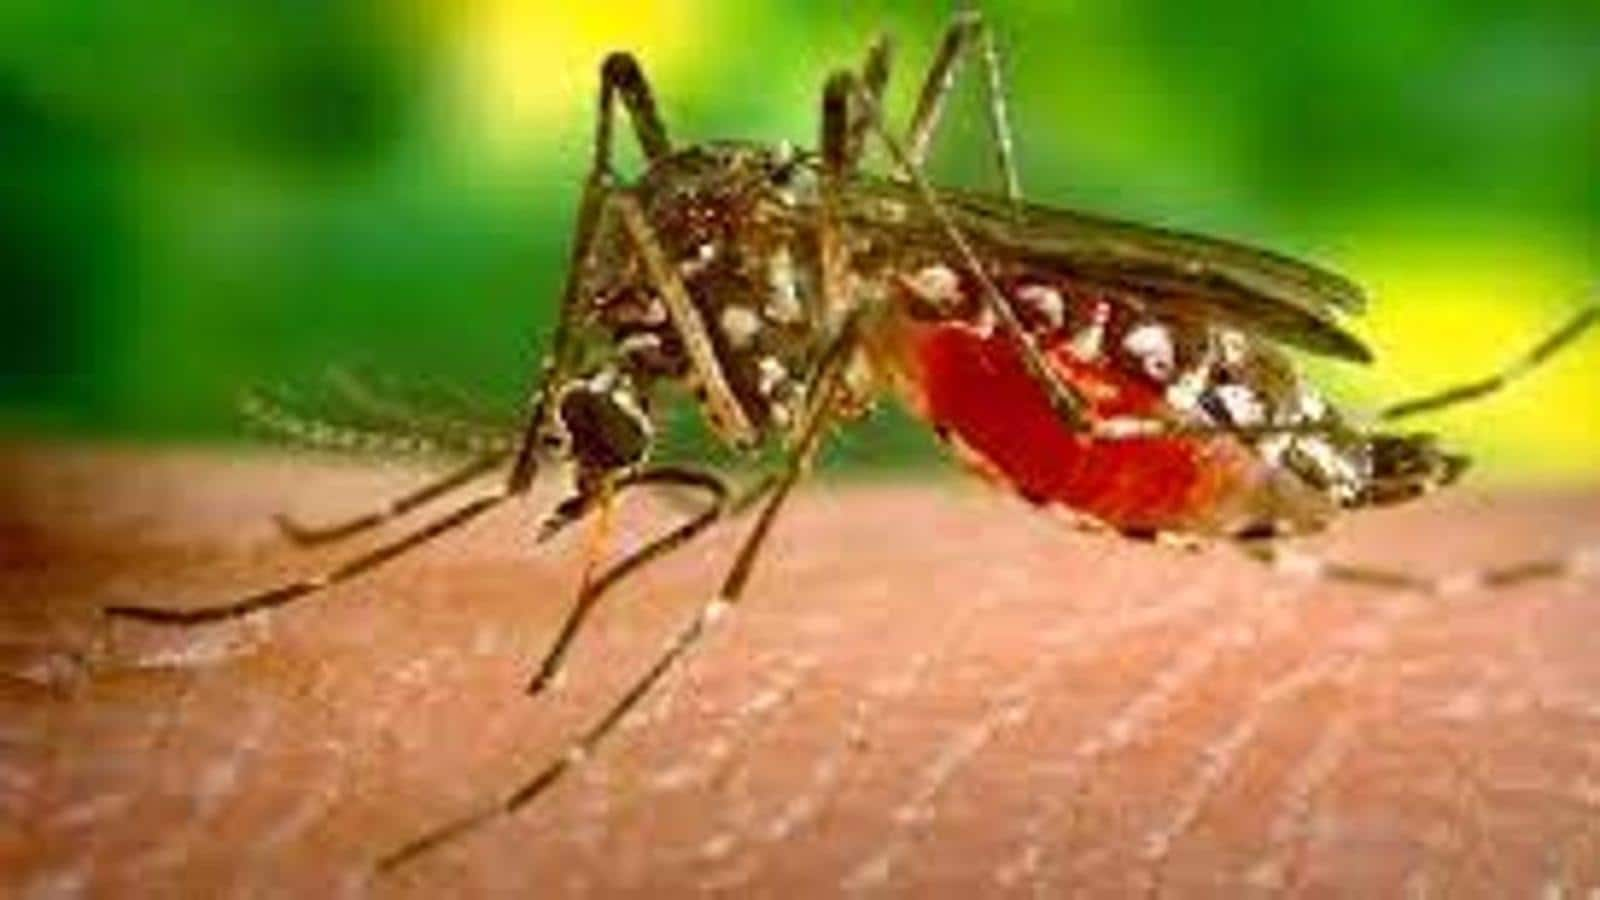 UP's first Zika virus case: Centre rushes team to Kanpur